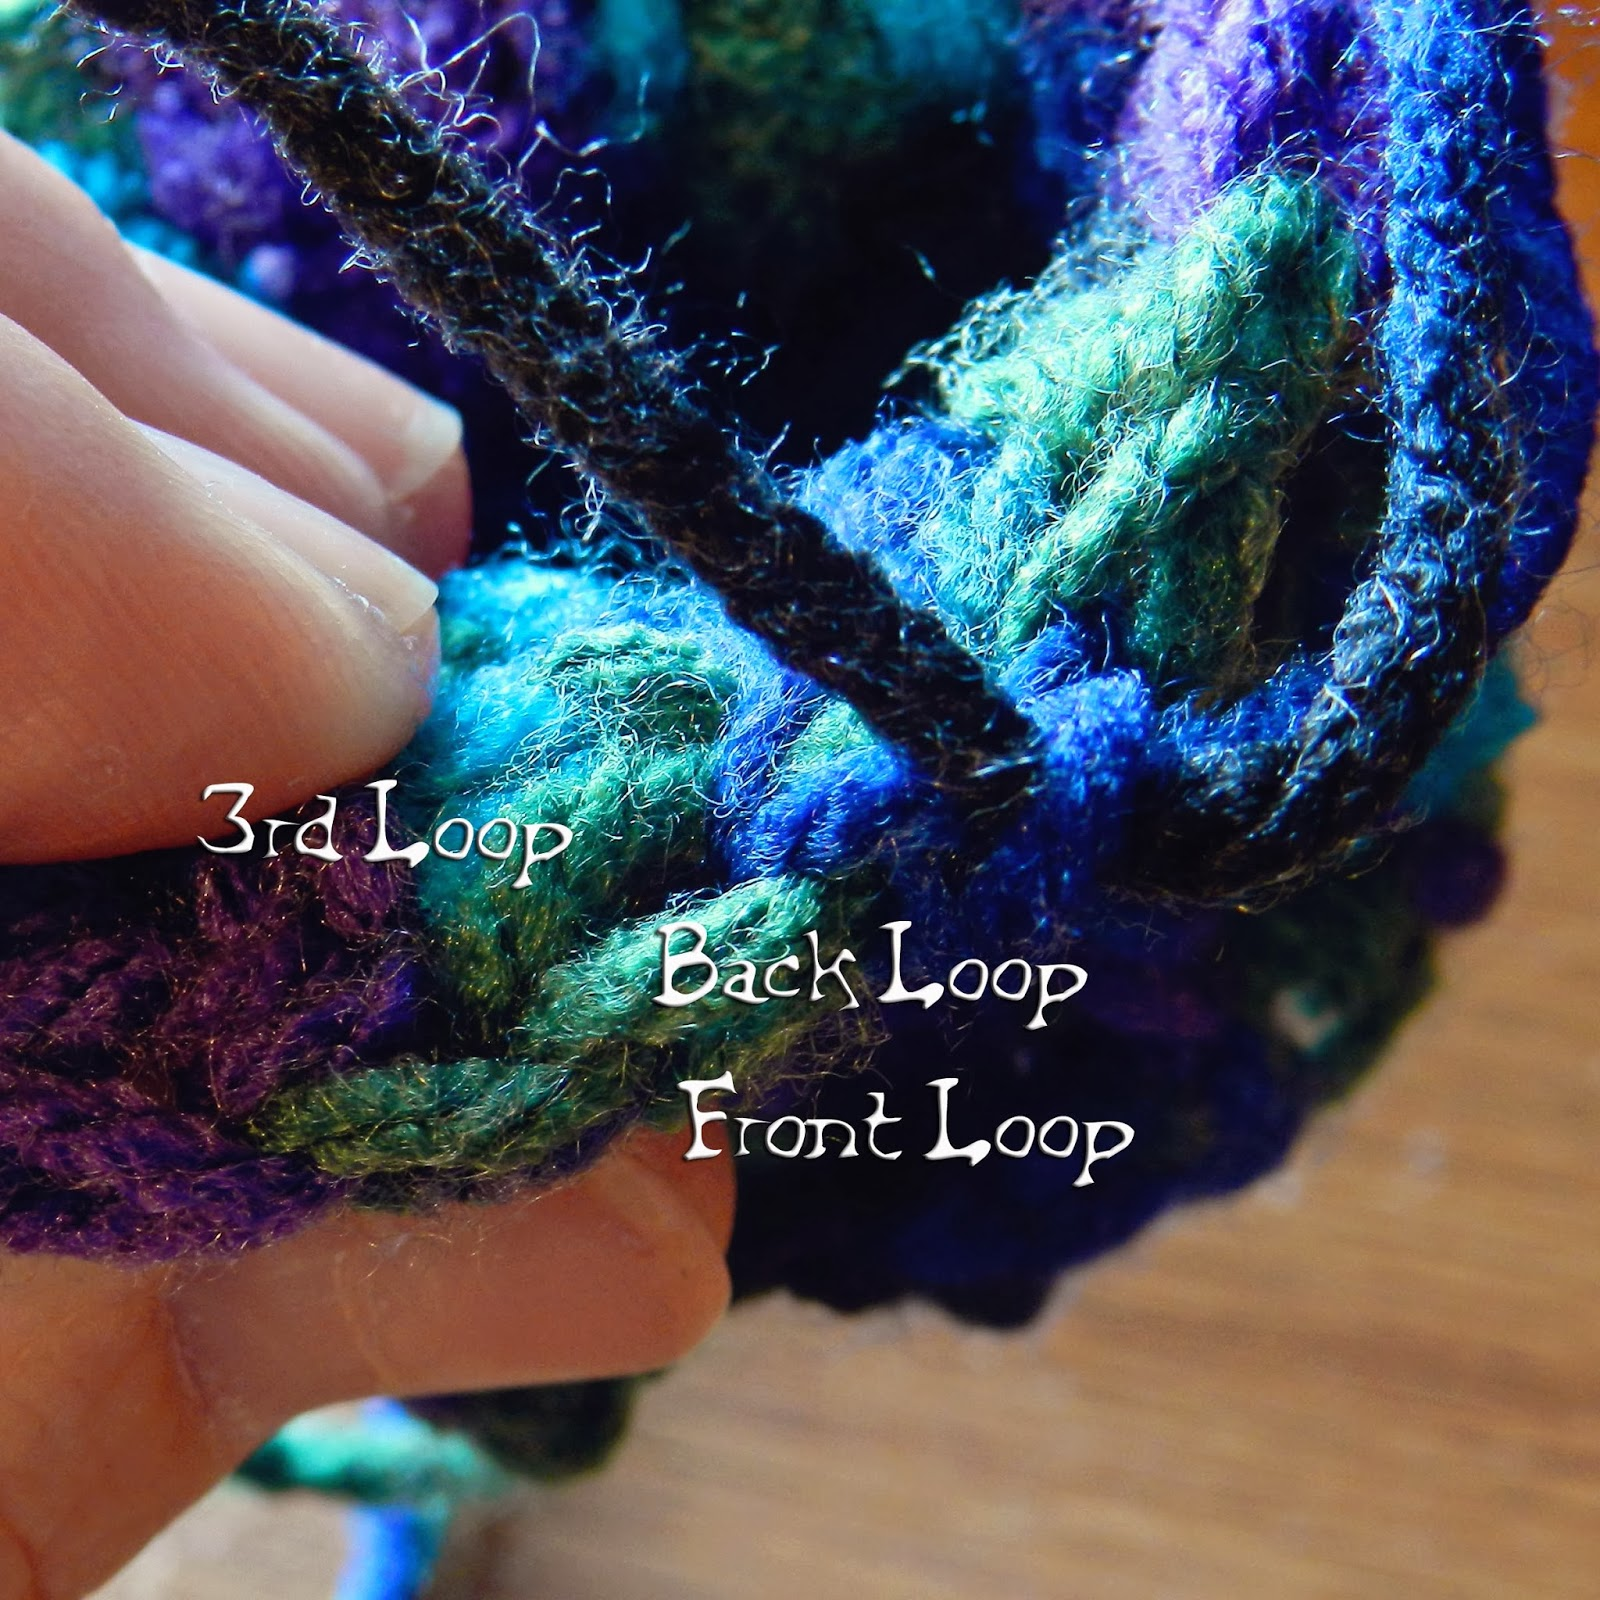 Crocheting In Third Loop : When working with crochet stitches, you normally see two loops - the ...